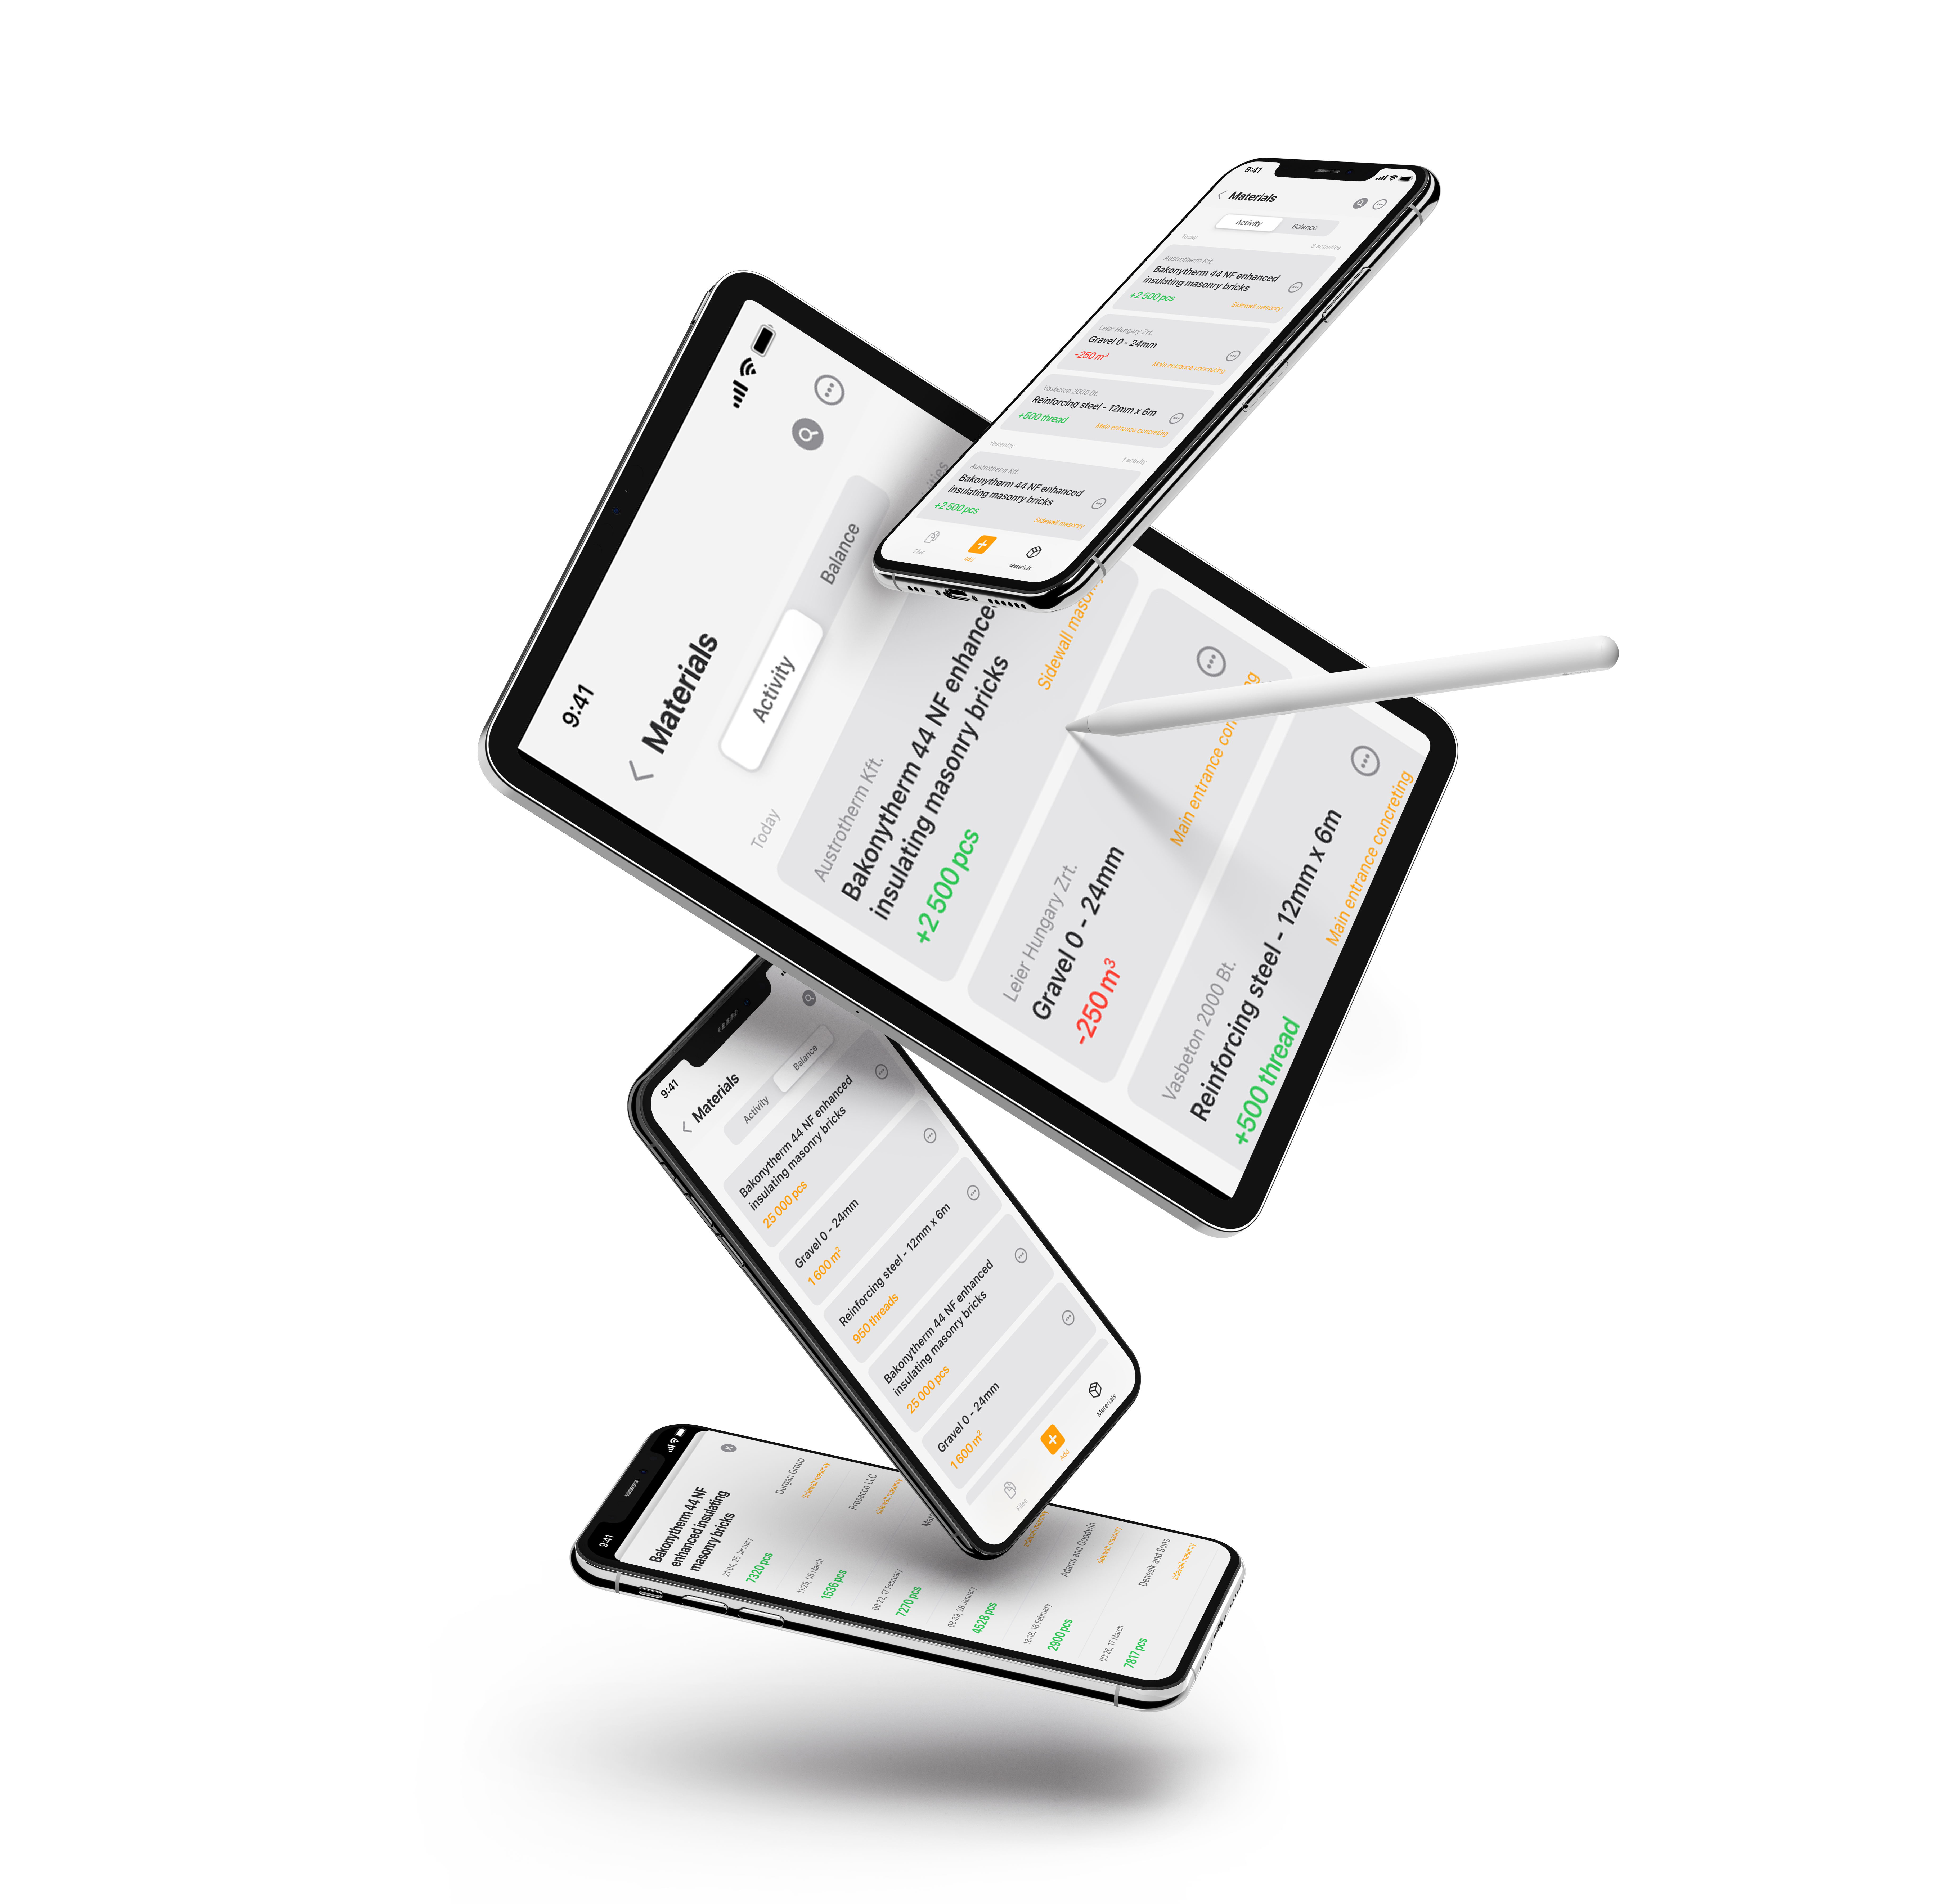 project management software material tracking on floating apple devices